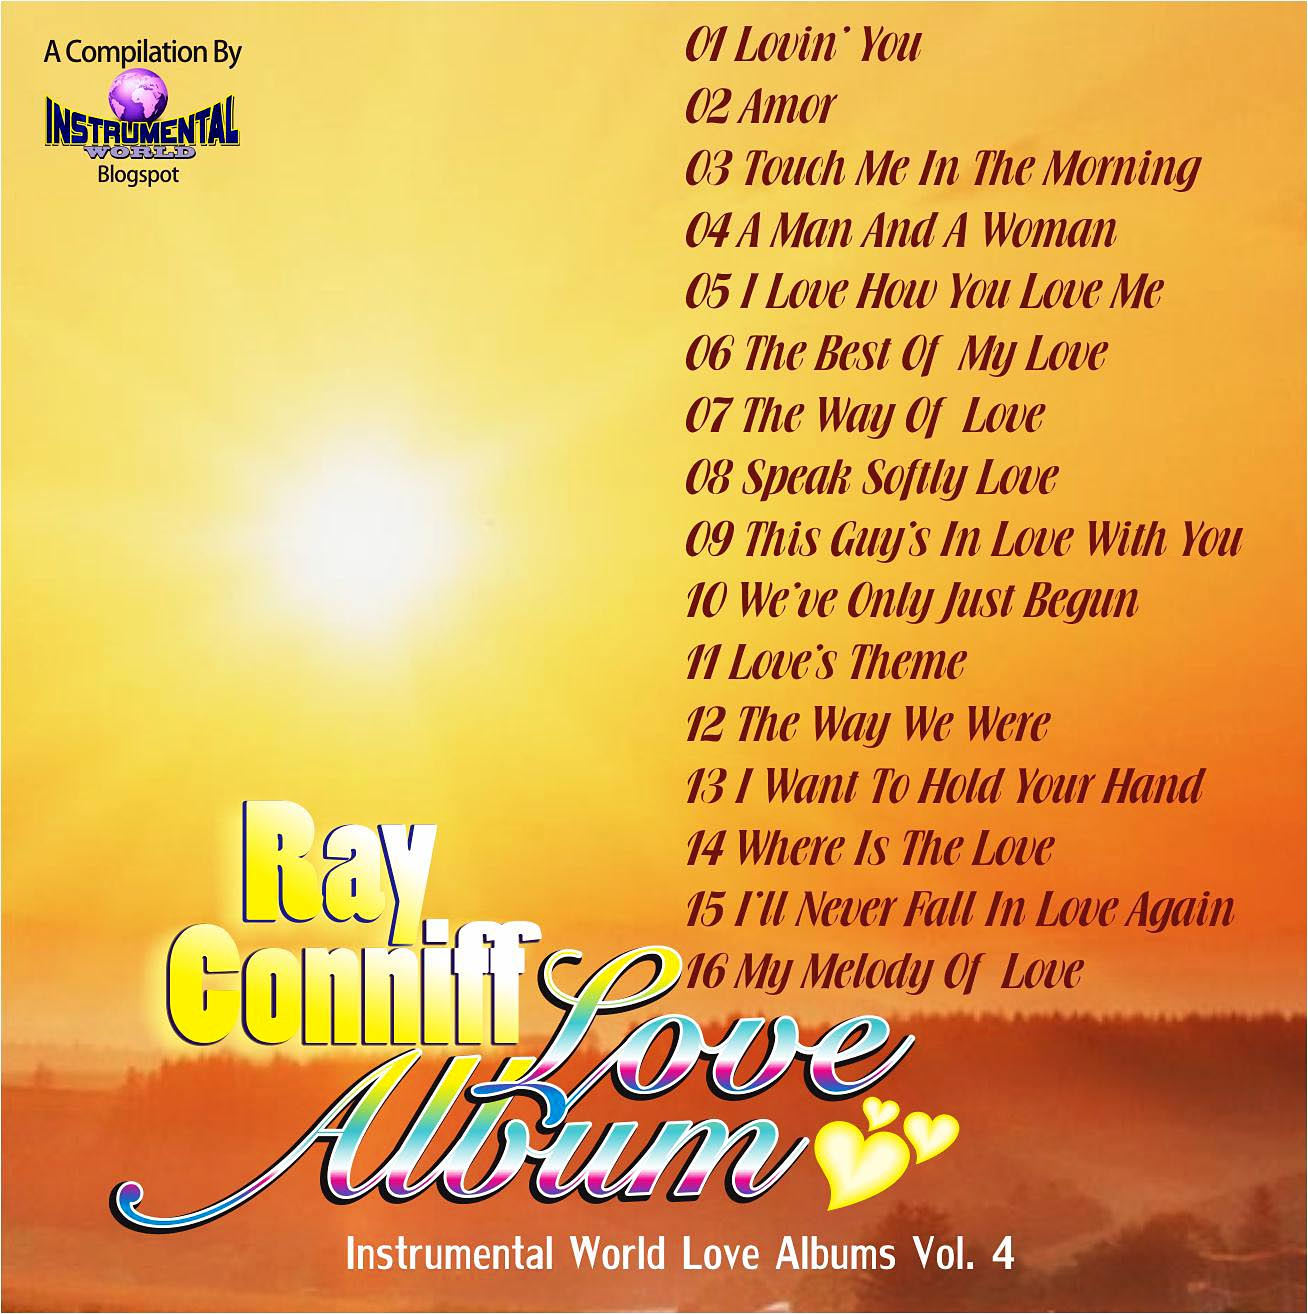 cd Instrumental World Love Album Vol.4  R. connif The+Love+Album+4b